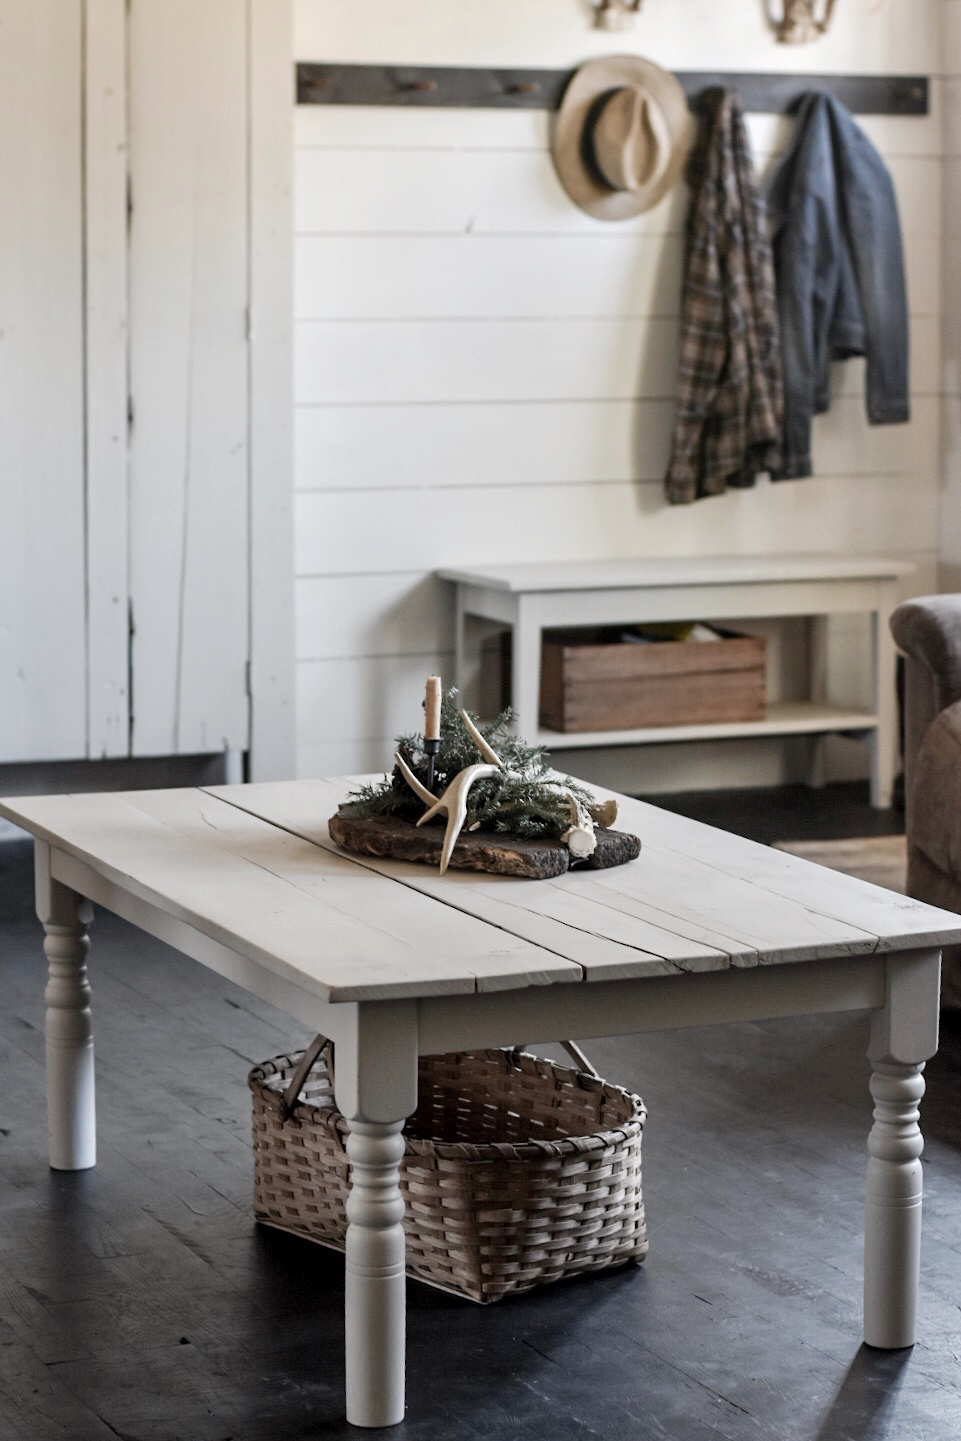 DIY Rustic Farmhouse Coffee Table, Cut Down From a Kitchen Table